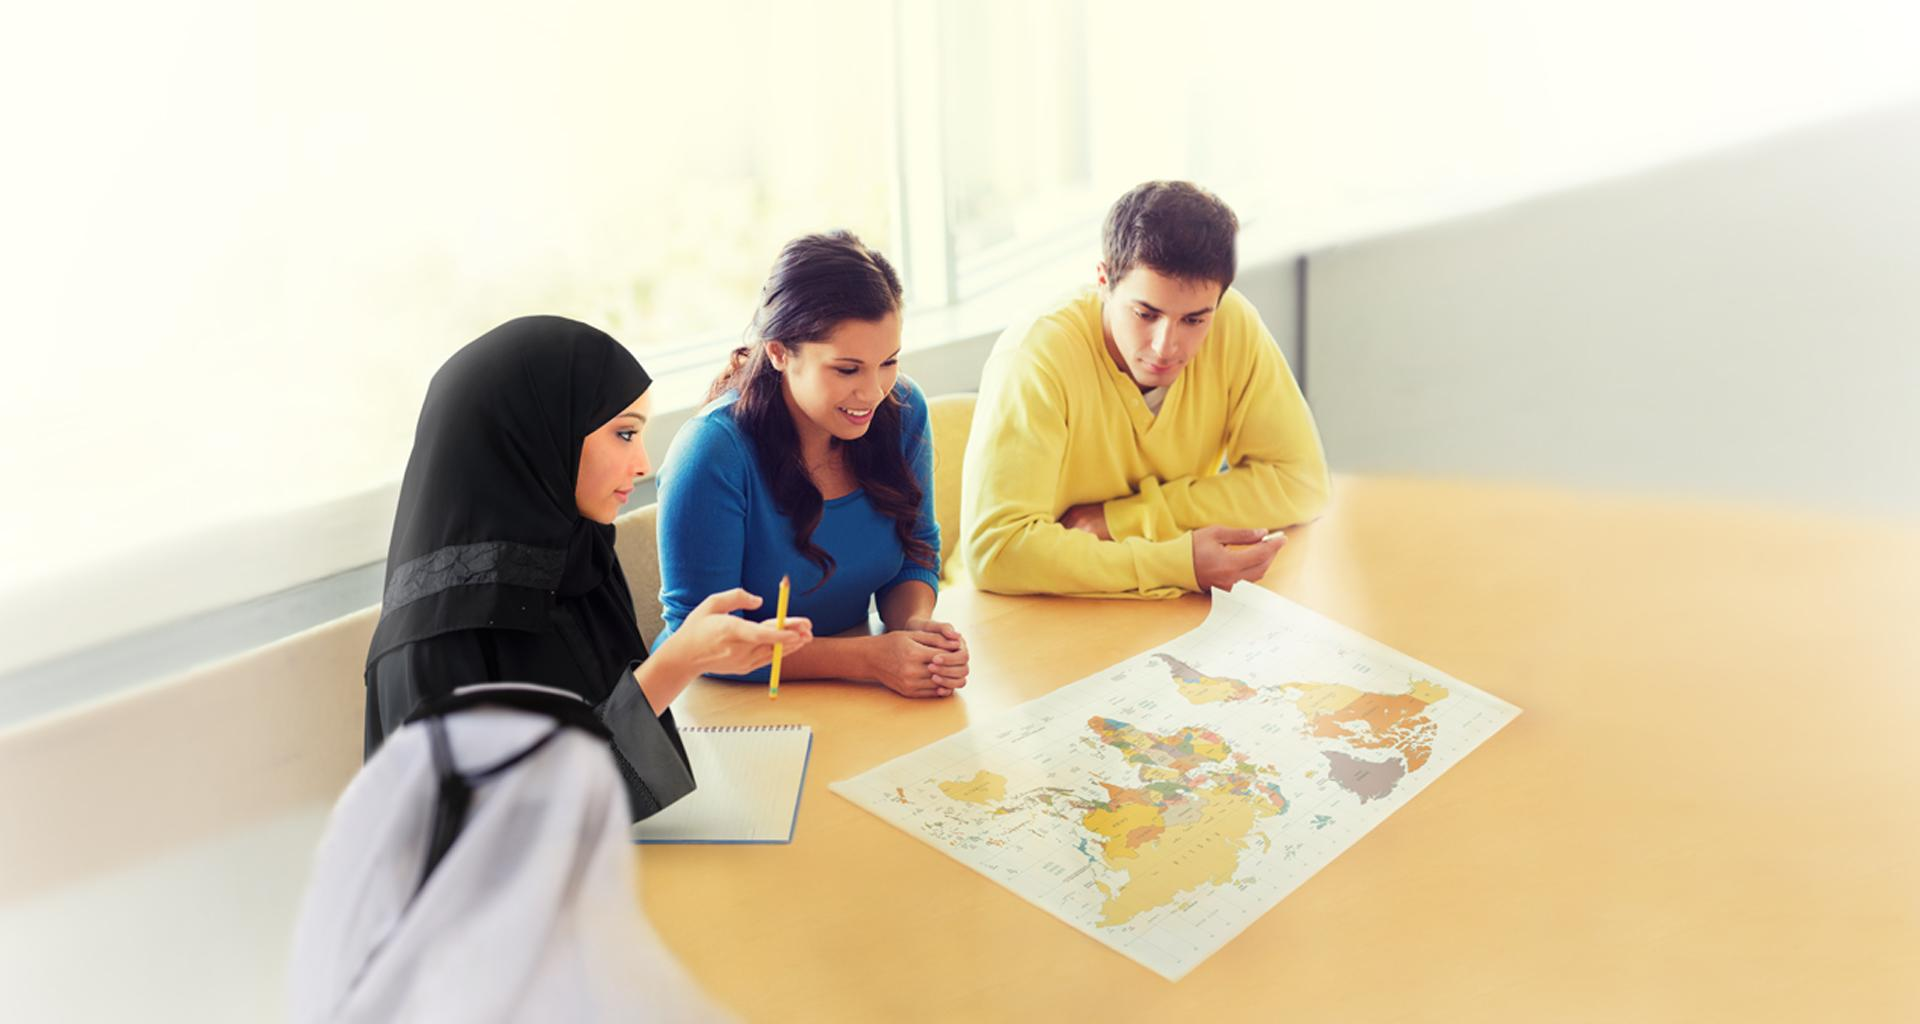 Master of Arts in Islam and Global Affairs